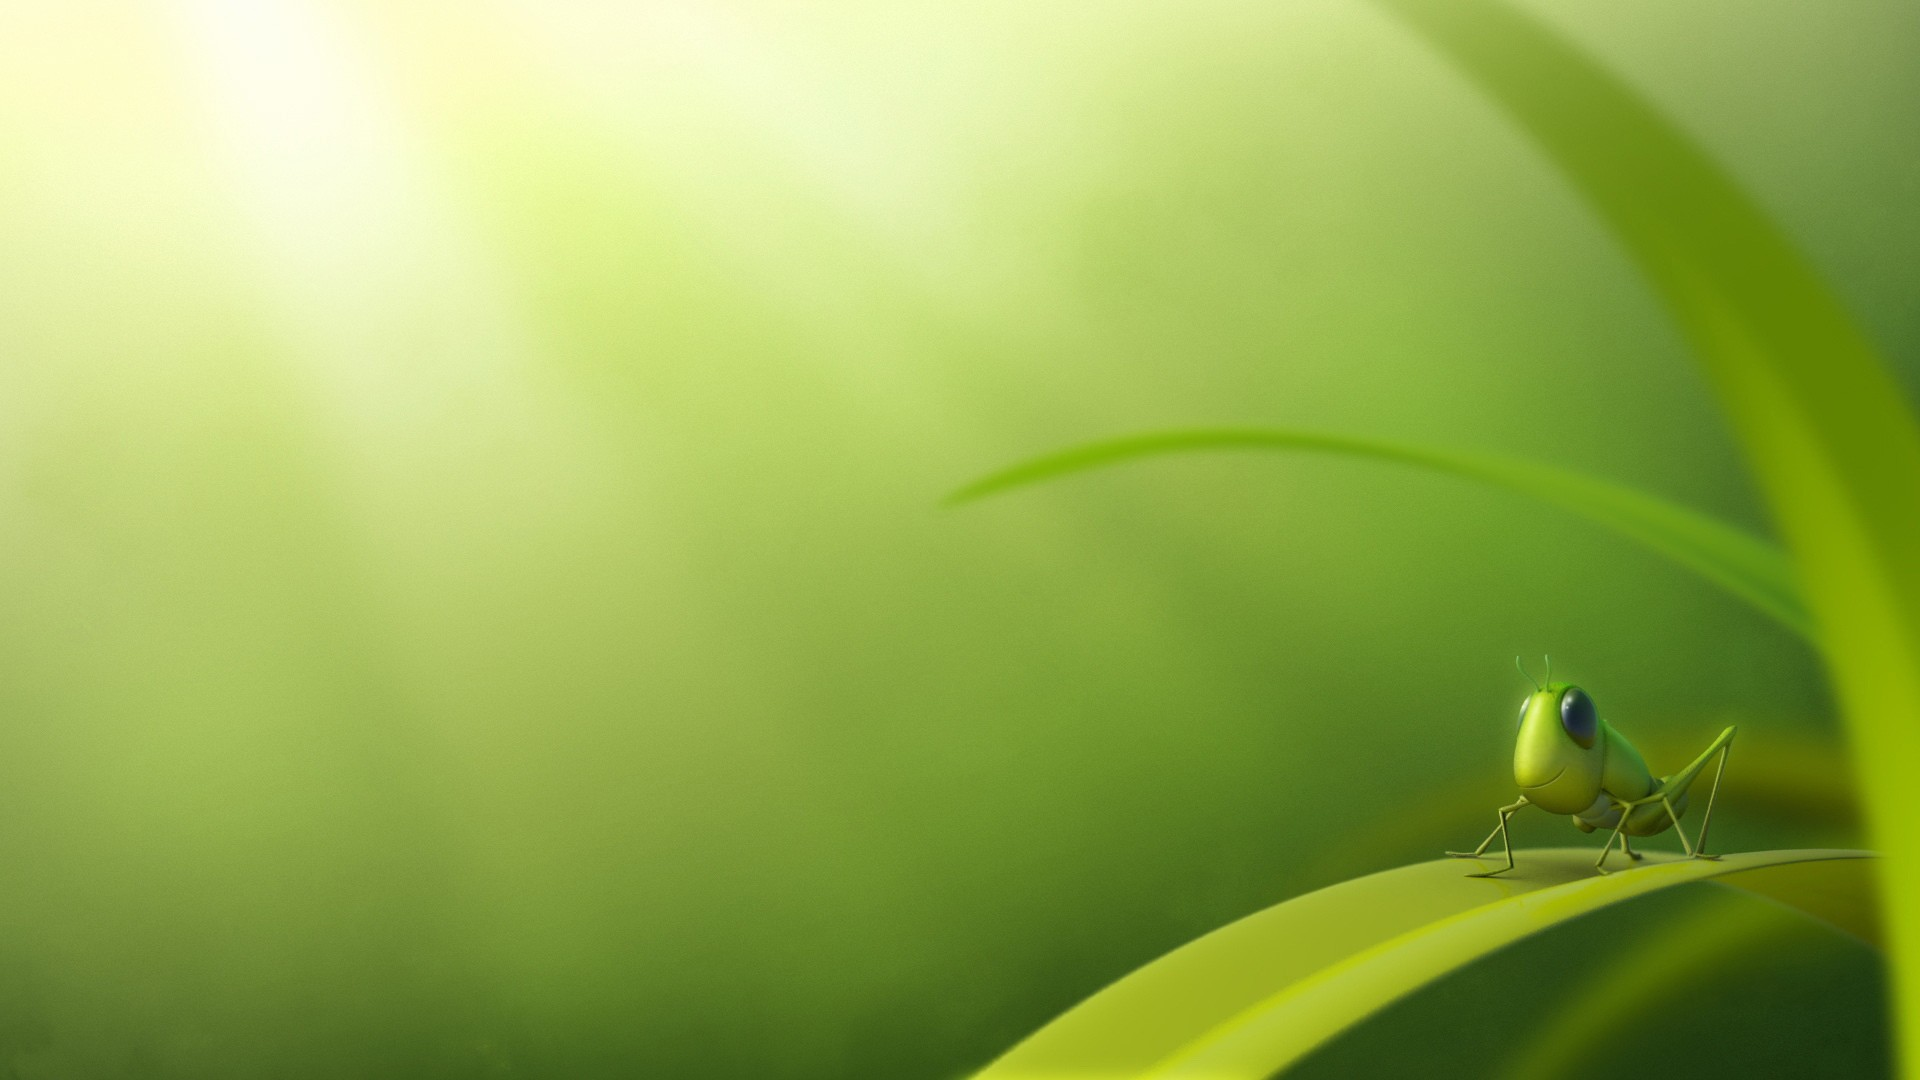 Insects Background